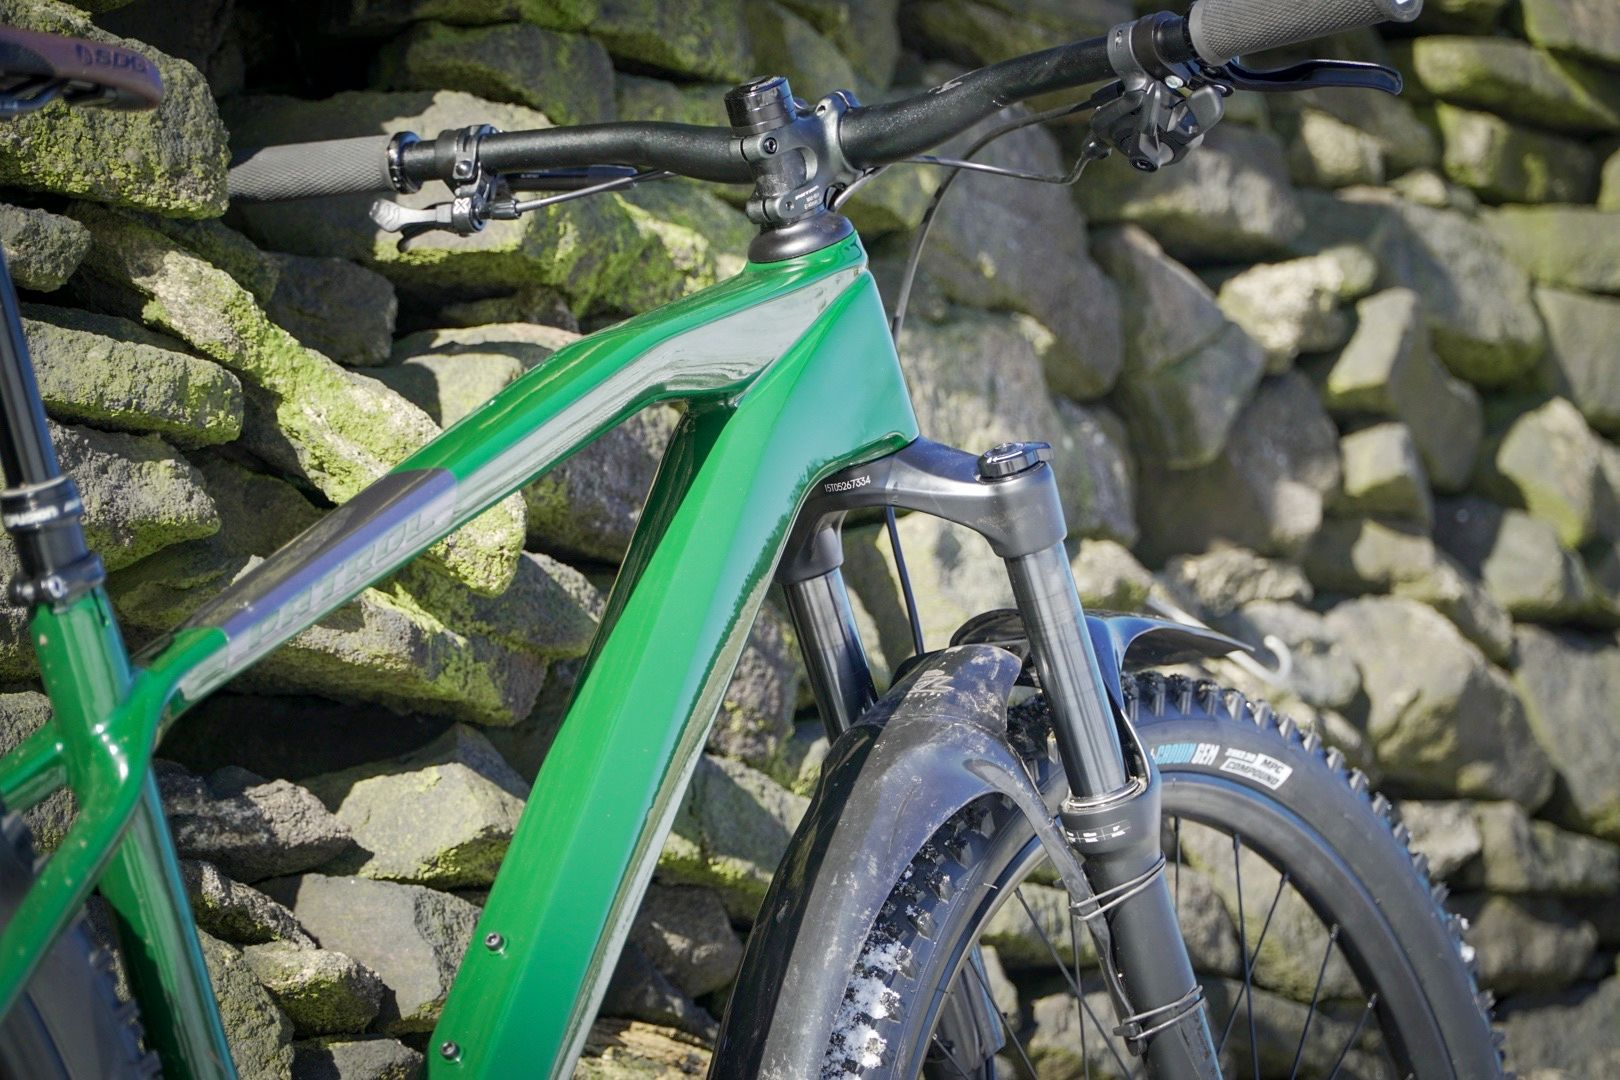 First Look: Patrol C091 Carbon Hardtail